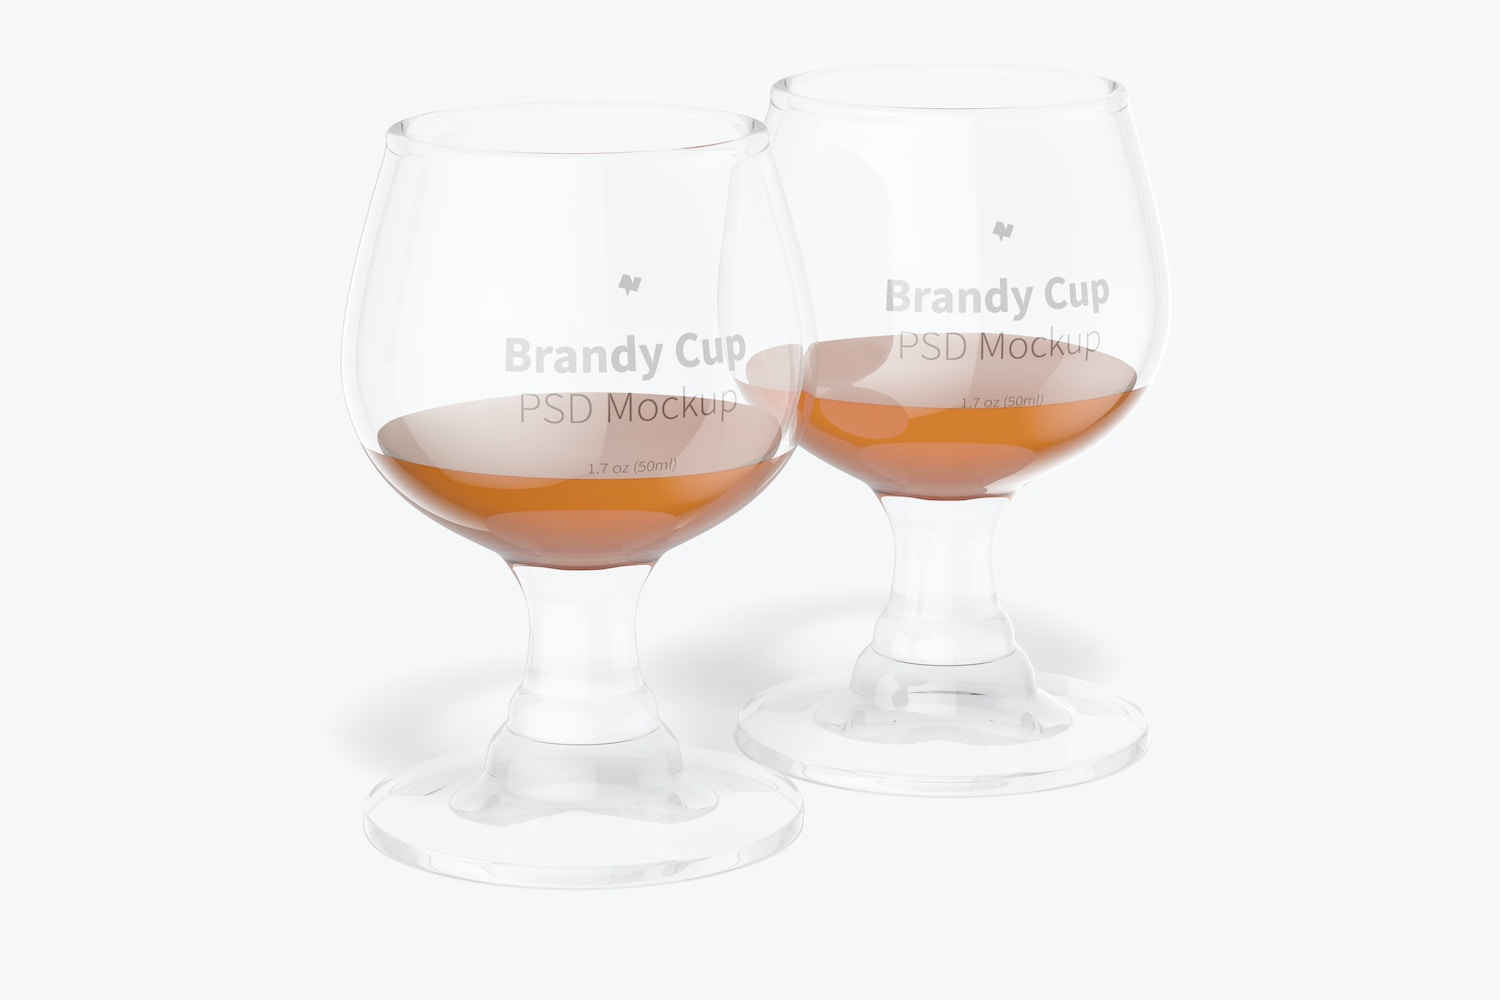 1.7 oz Glass Brandy Cups Mockup, Front View